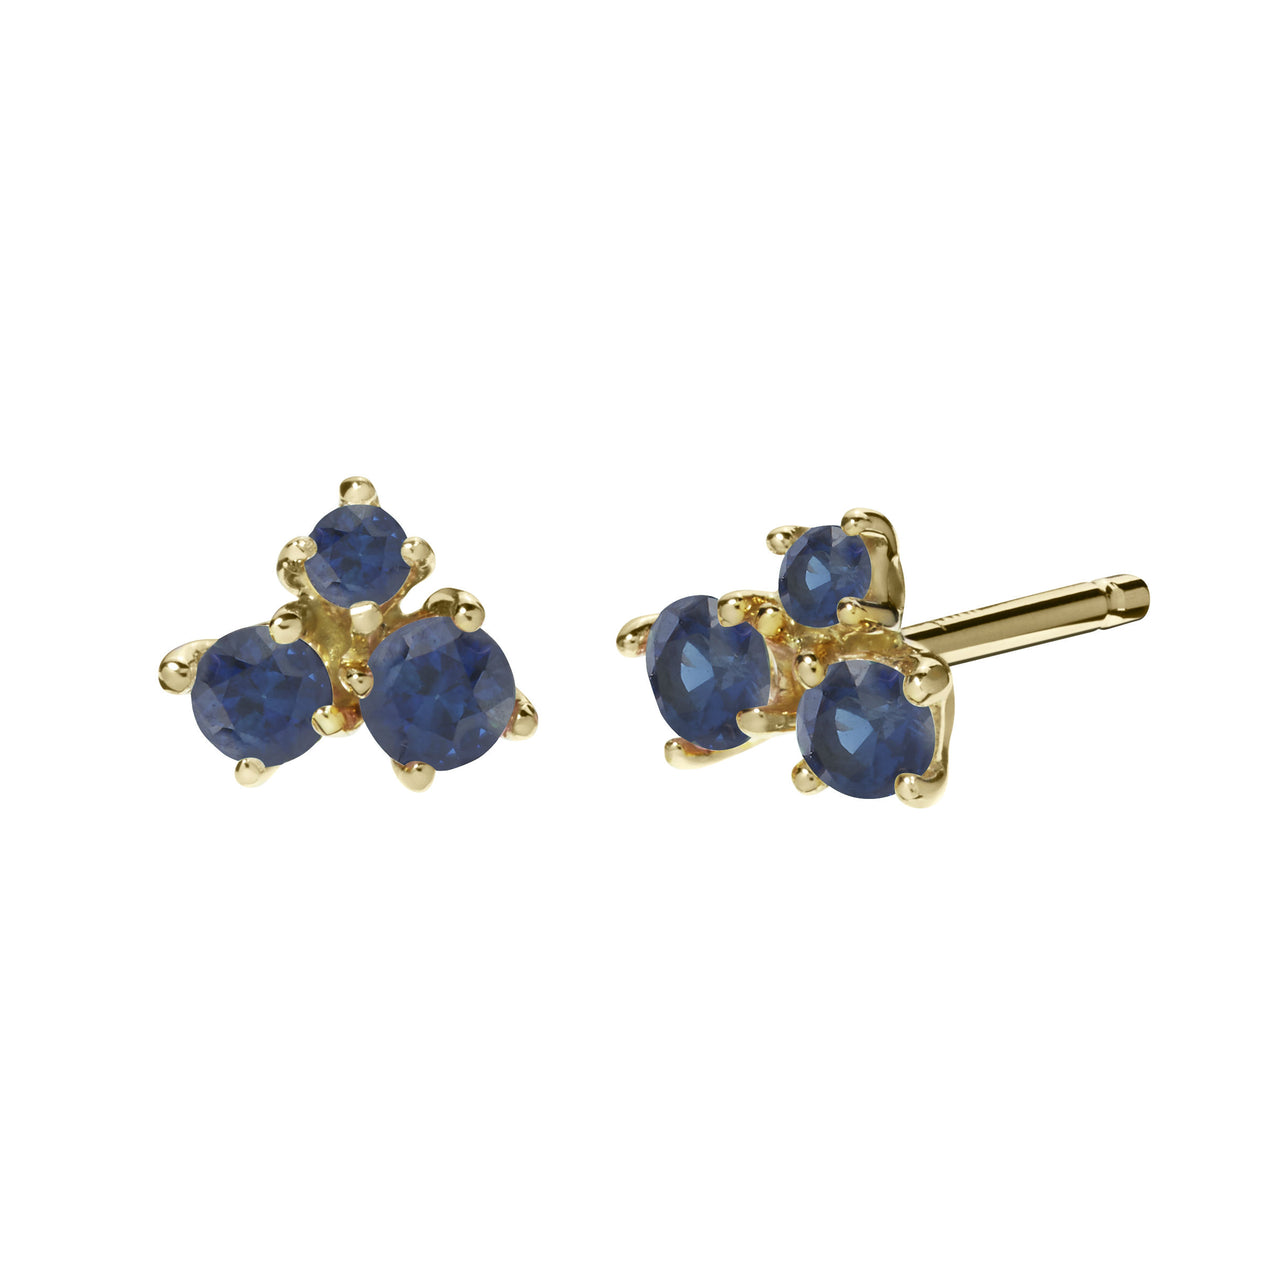 classic solitaire stud earrings with blue sapphires in 18k yellow gold by finn by candice pool neistat